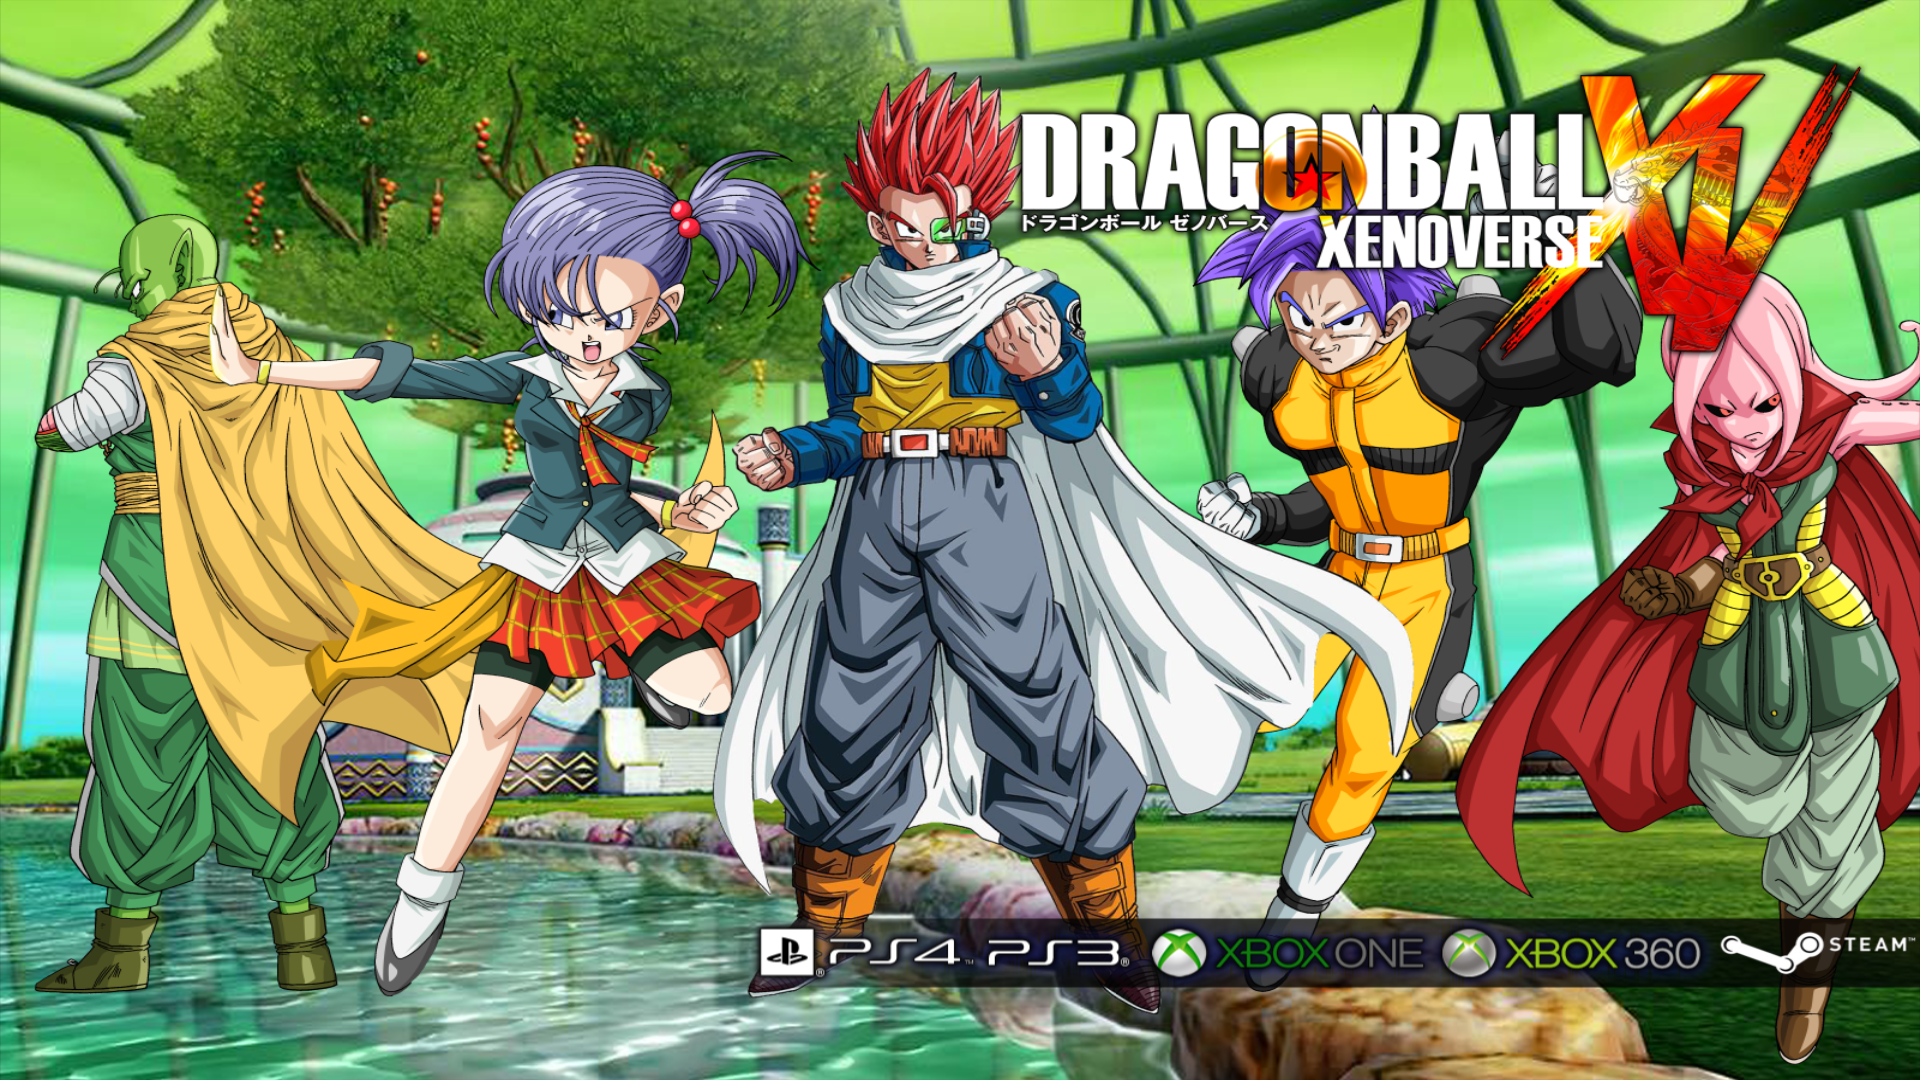 Dragon ball xenoverse poster background by veku786 on deviantart